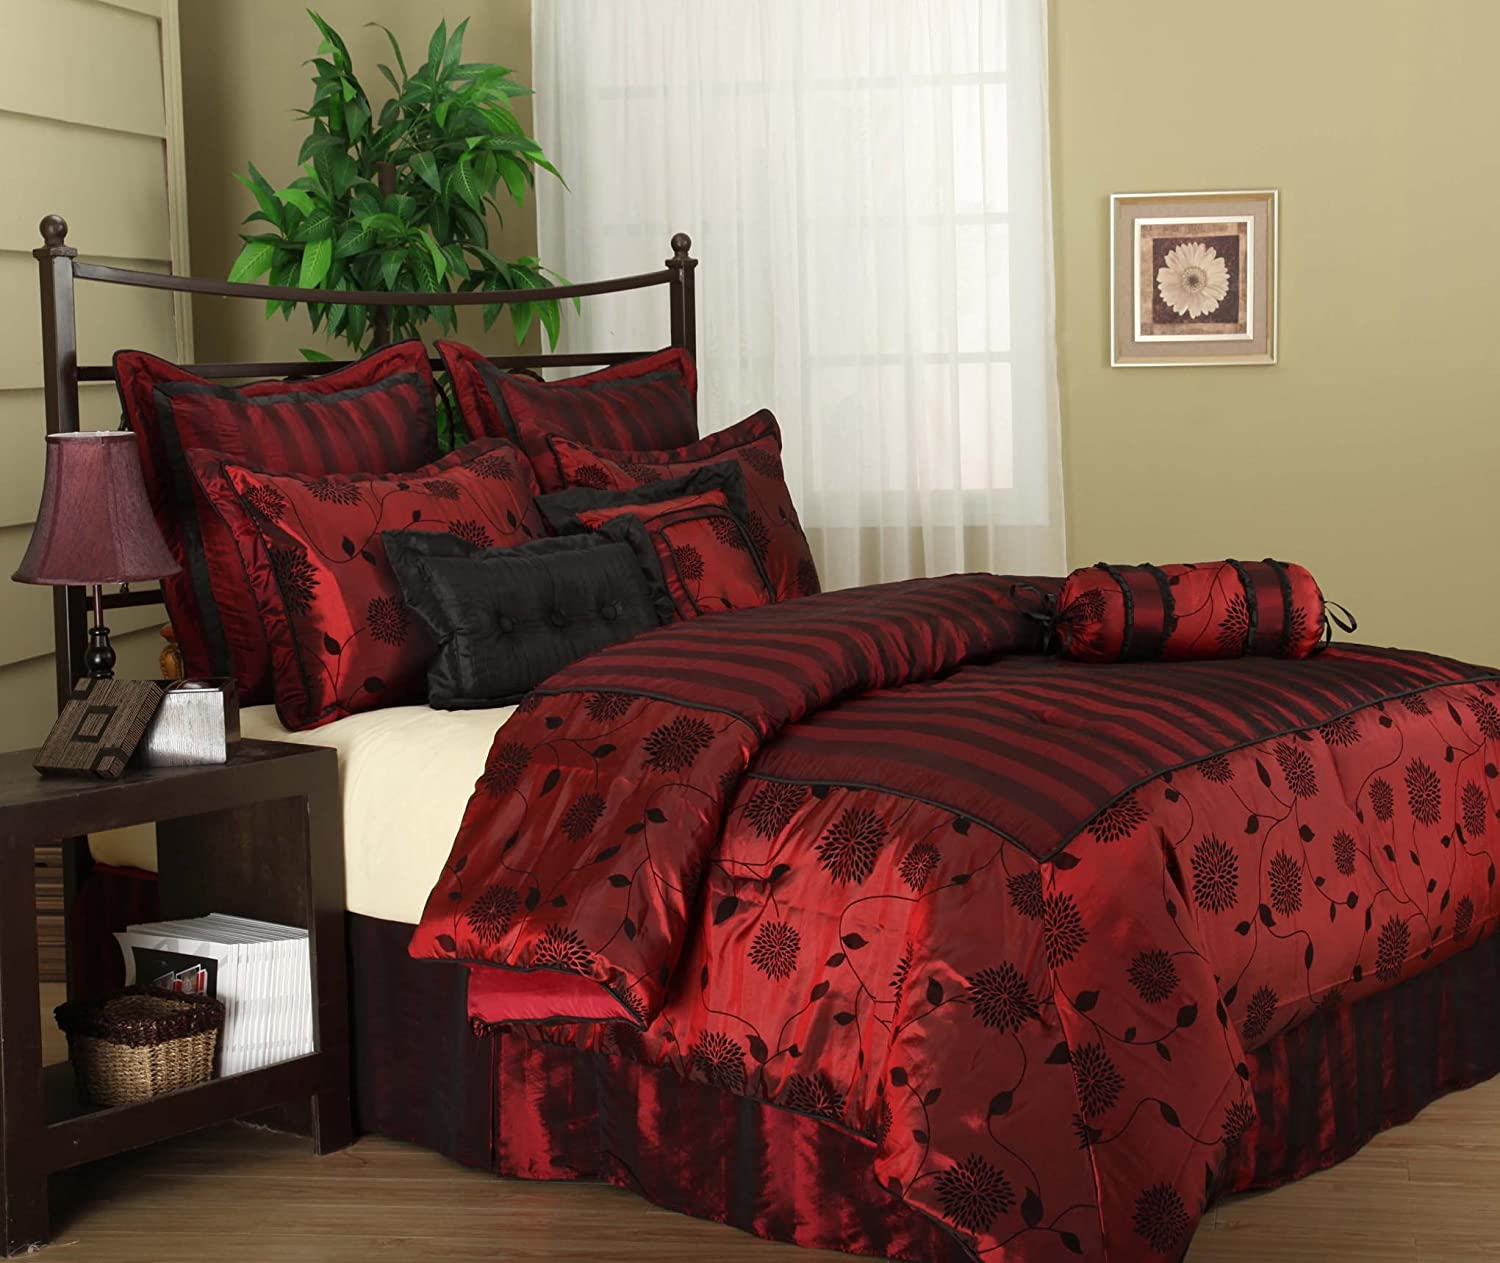 Burgundy queen comforter sets beautiful bedroom for Black and burgundy bedroom ideas